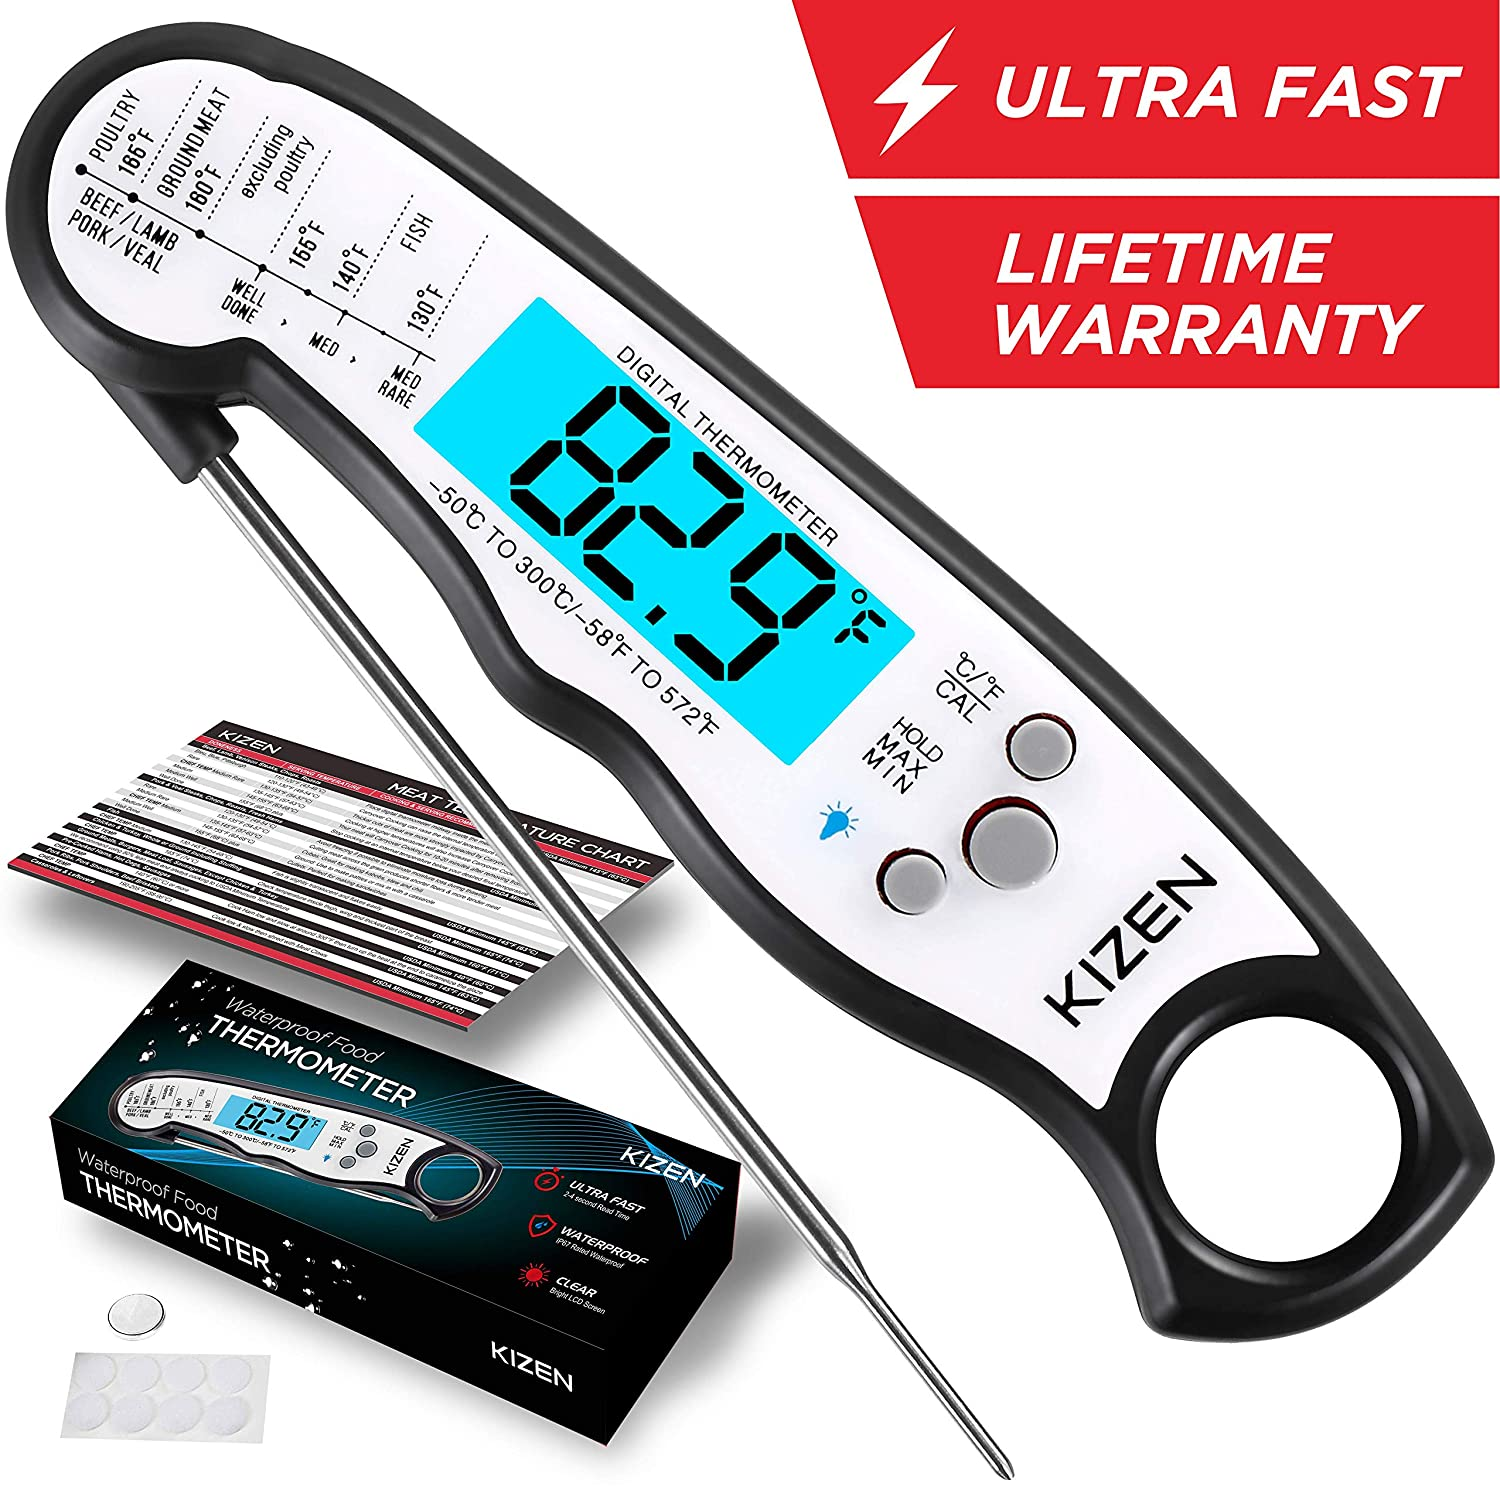 Instant Read Meat Thermometer - Best Waterproof Ultra Fast Thermometer with Backlight & Calibration. Kizen Digital Food Thermometer for Kitchen, Outdoor Cooking, BBQ, and Grill! (Jet Black)